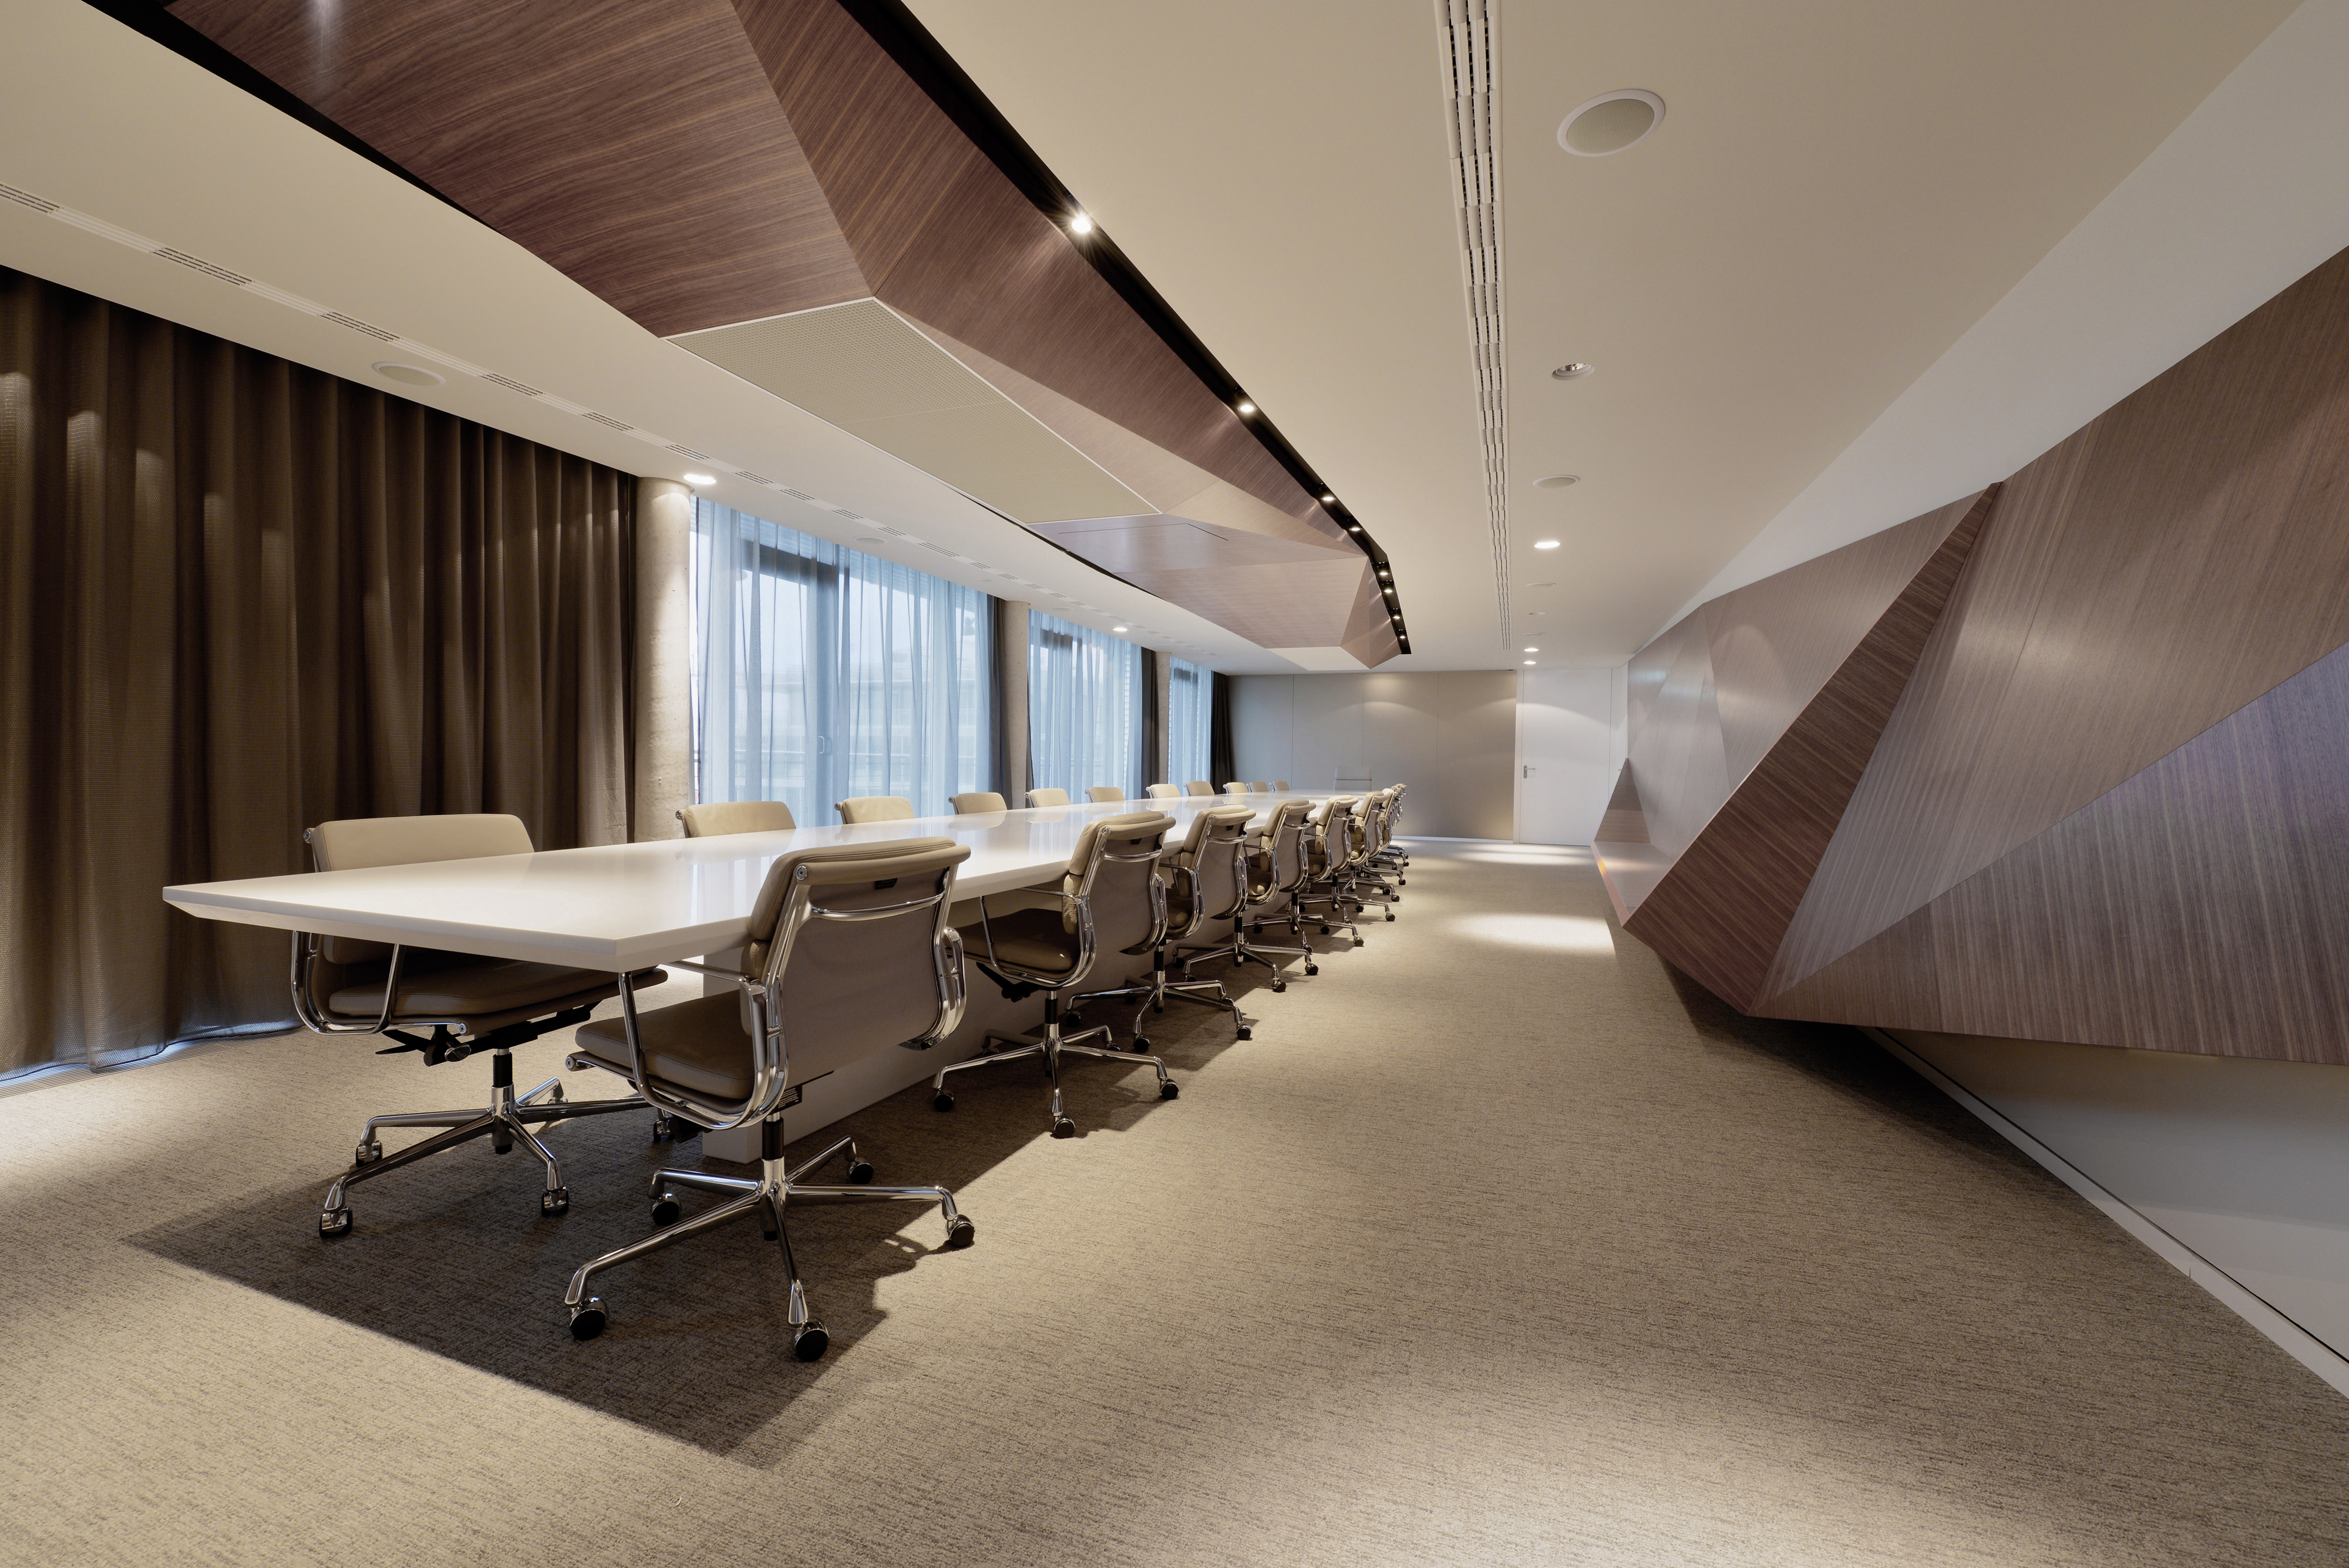 This expansive conference space showcases large form versions of the polygonal structures, in natural wood tones here. These geometric shapes break from the standard right angled form of an office, providing a unique yet sharply industrial creative element.